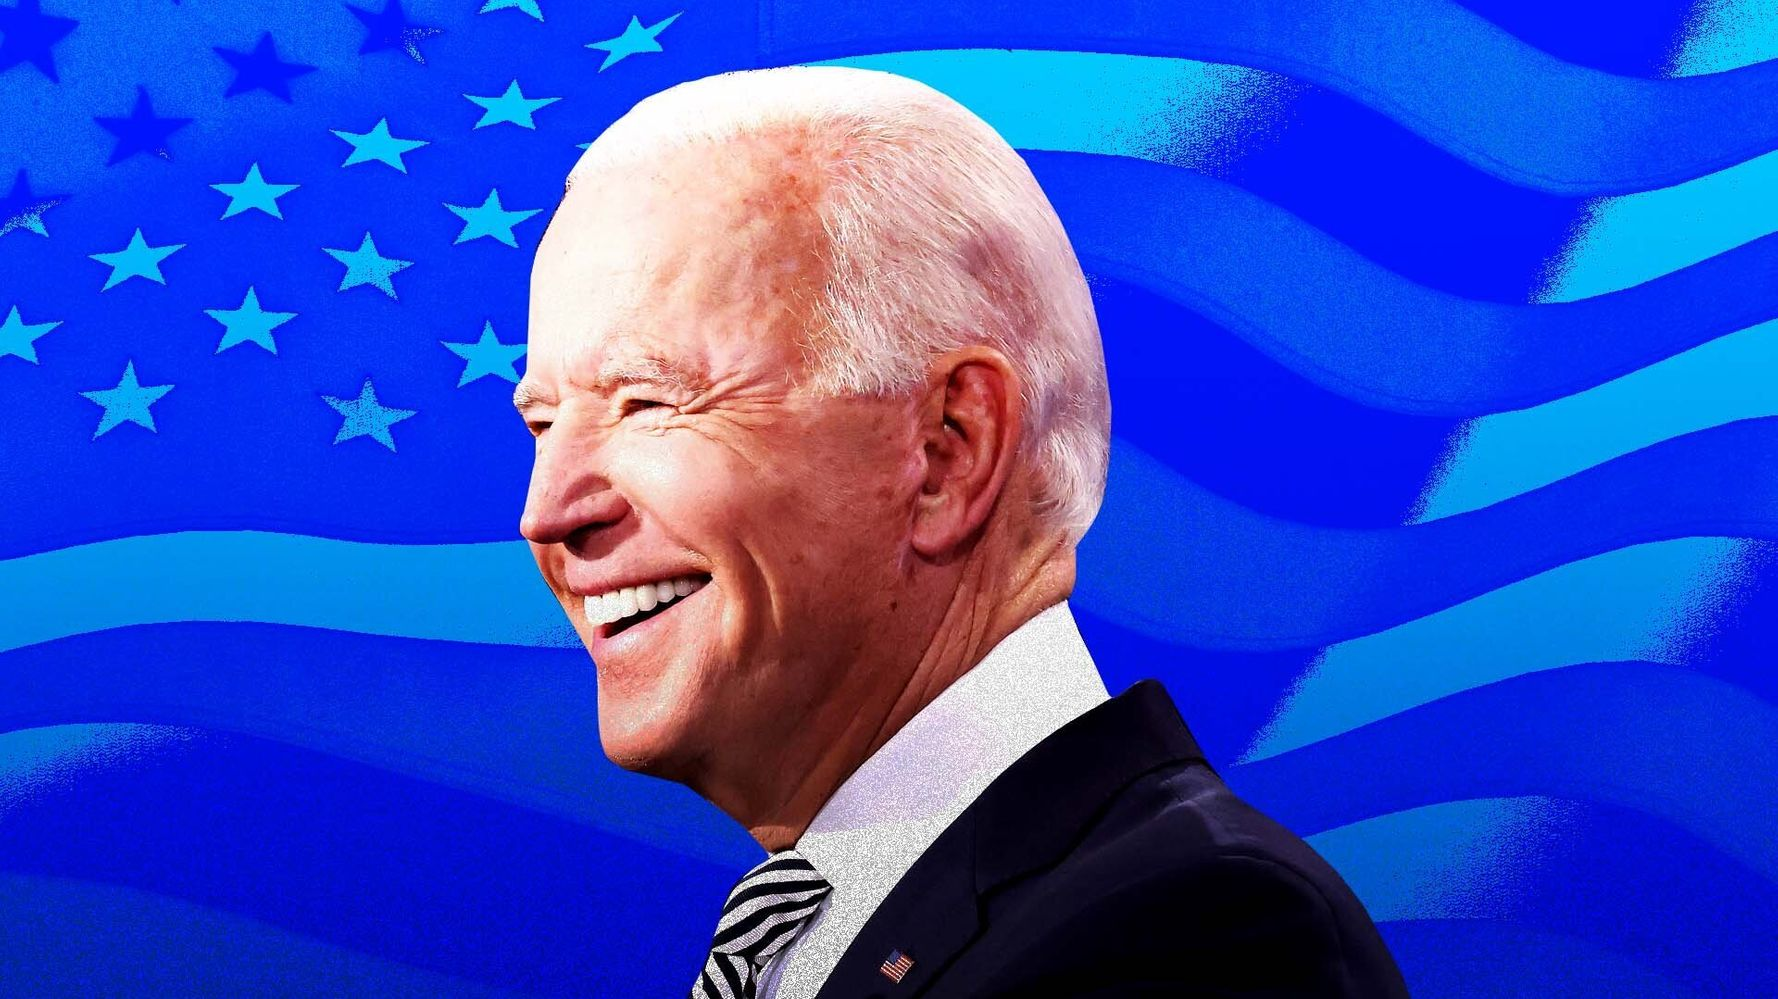 Joe Biden Wins Historic 2020 Presidential Election, Vanquishing Donald Trump